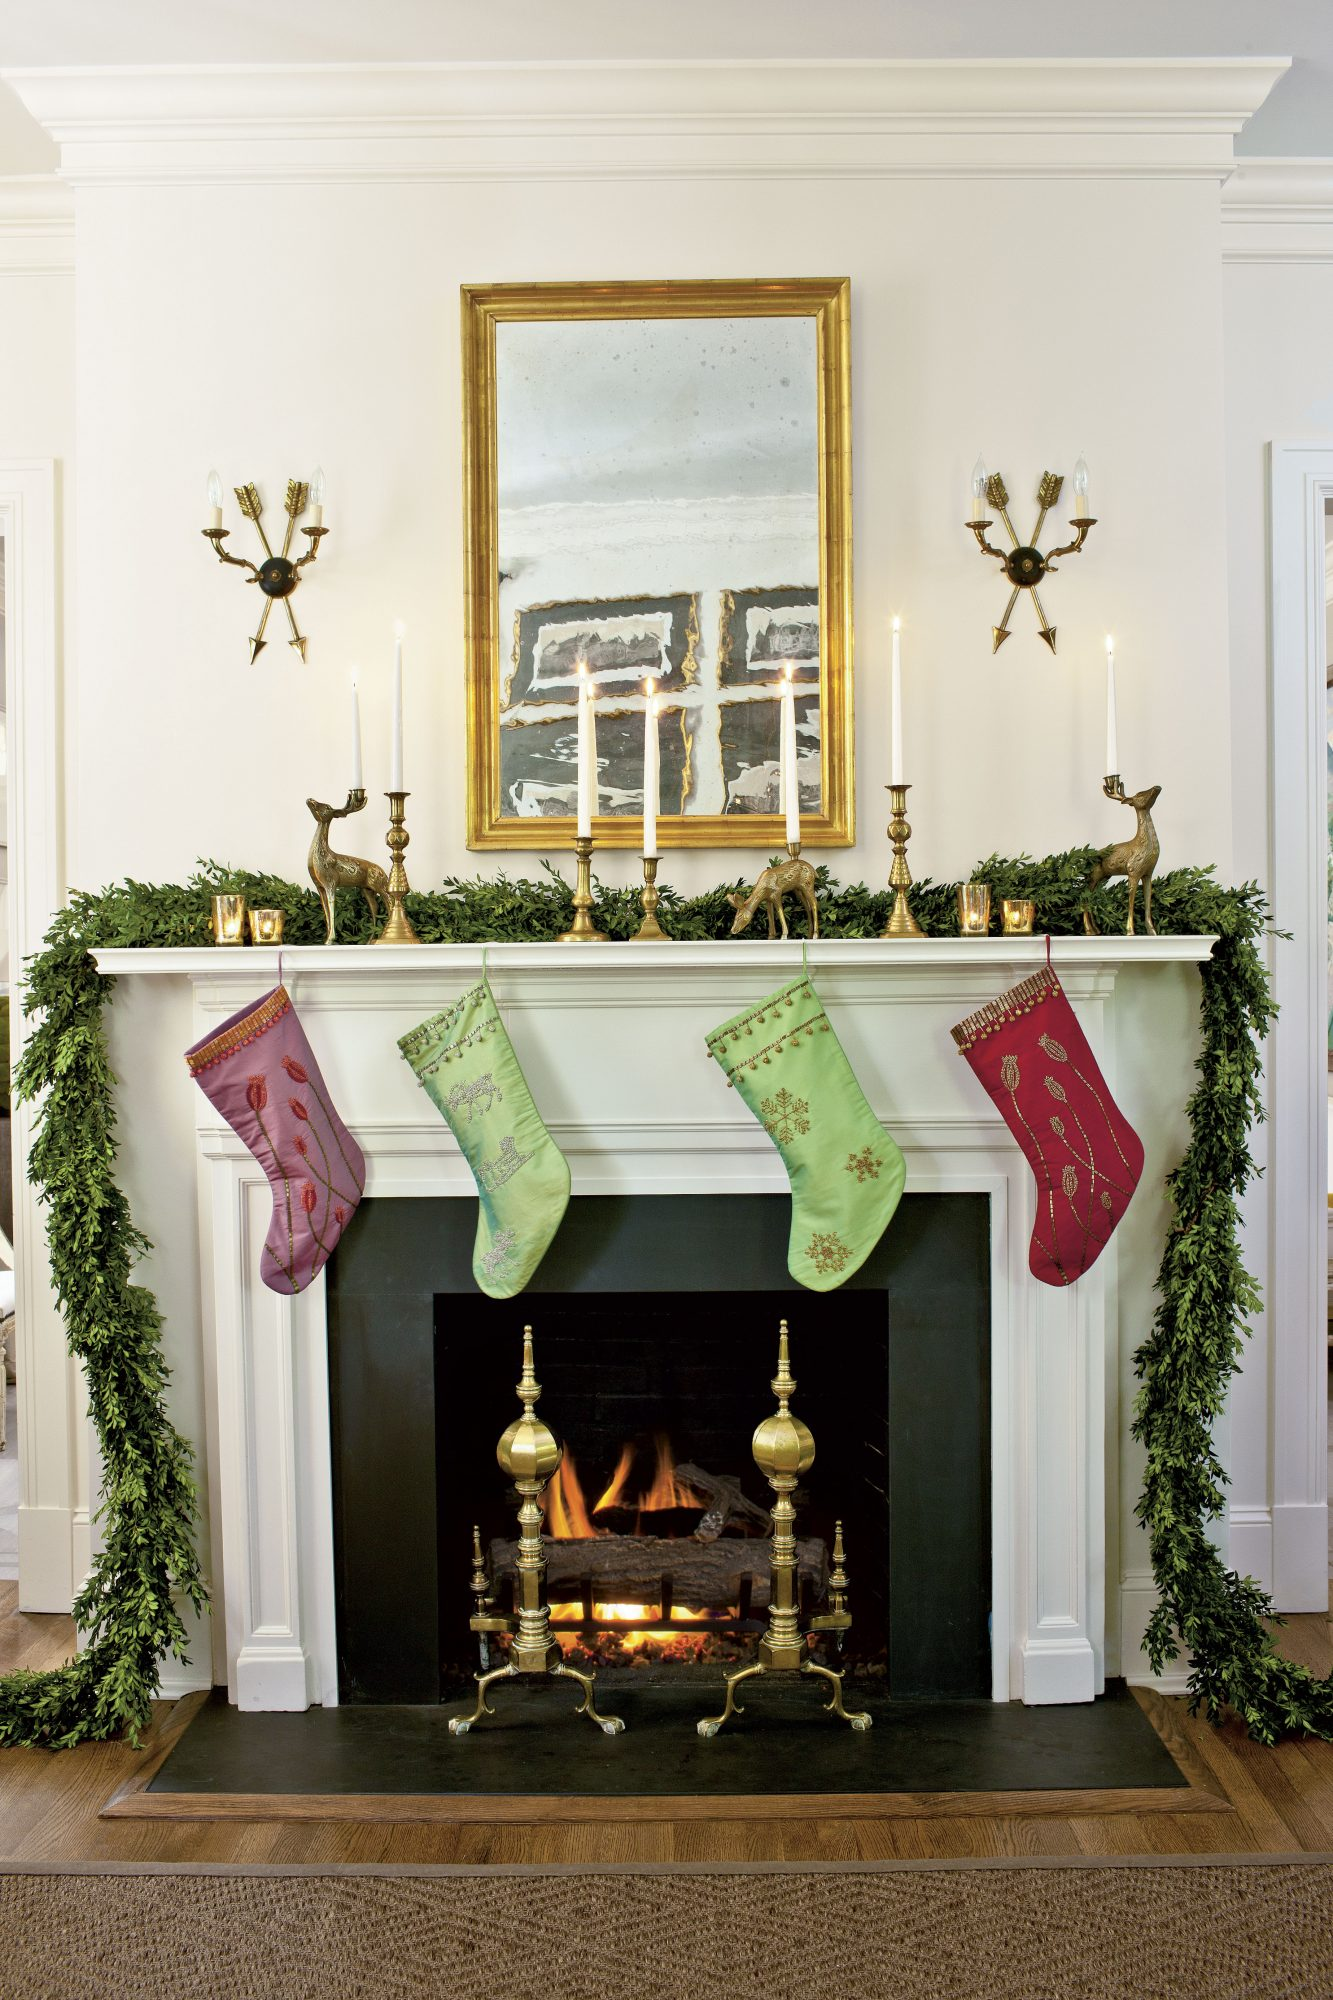 Sarah Tuttle Boxwood Garland on the Mantel for Christmas with Stockings